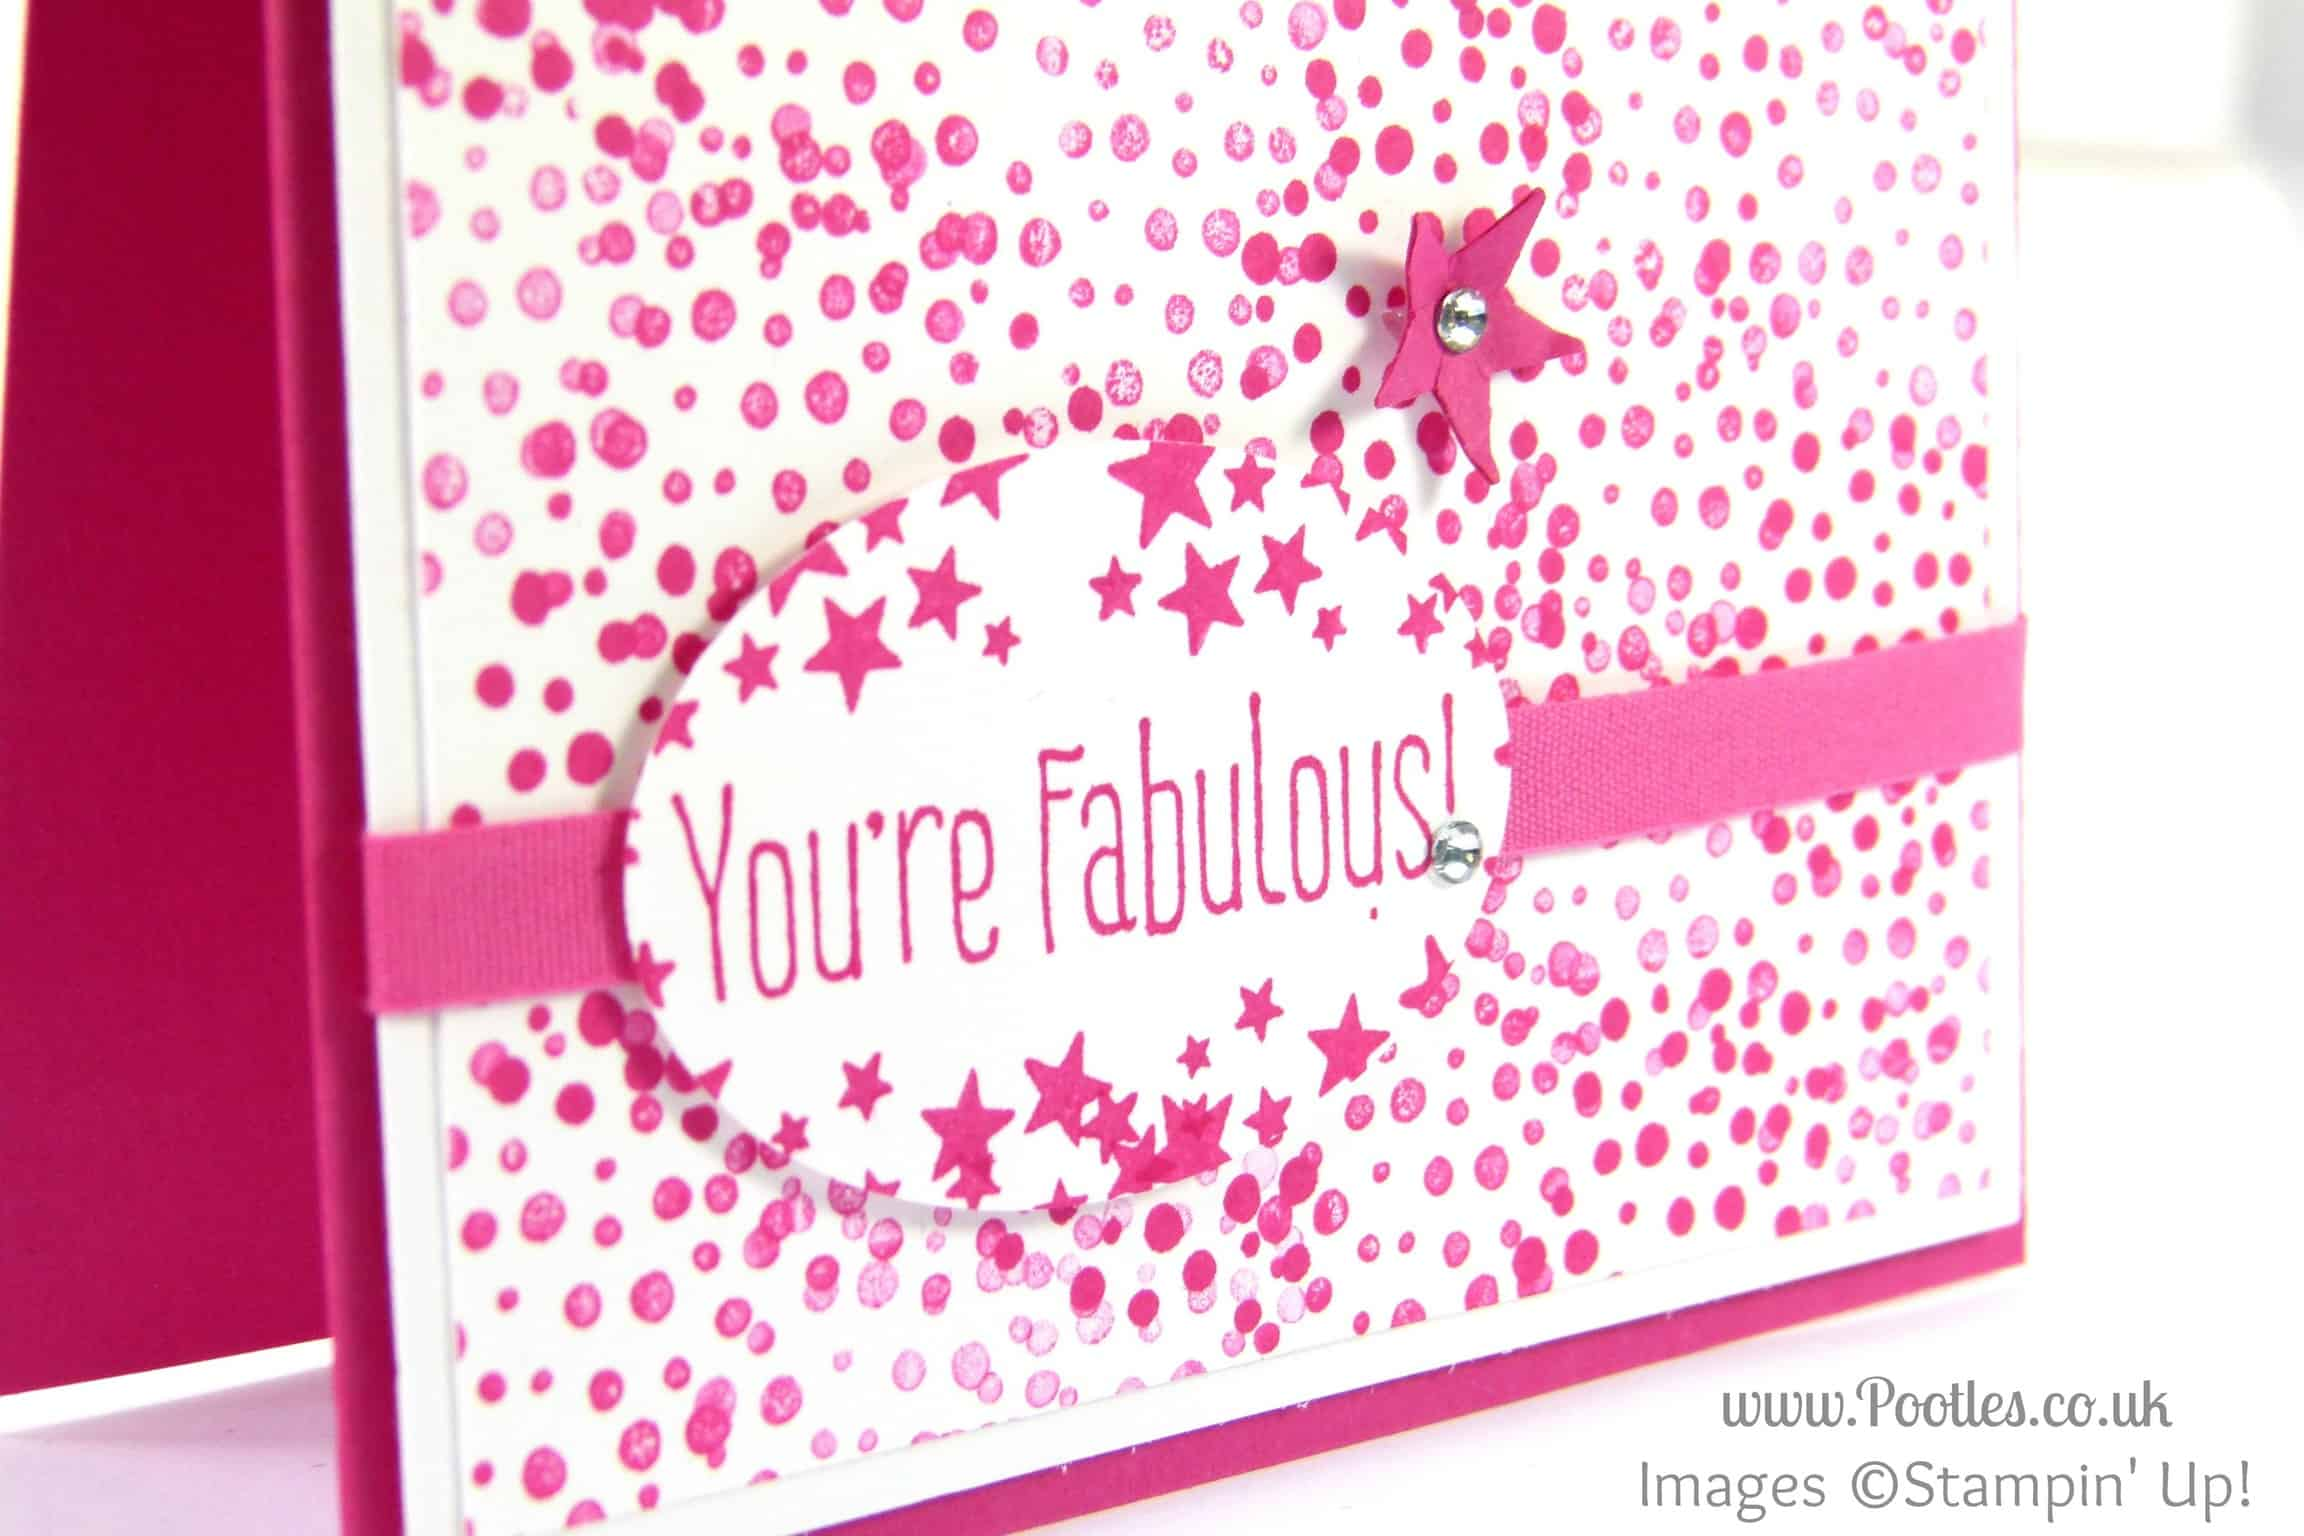 Stampin' Up! UK Demonstrator Pootles - High Five for an Optical Illusion Card... Close Up Detail